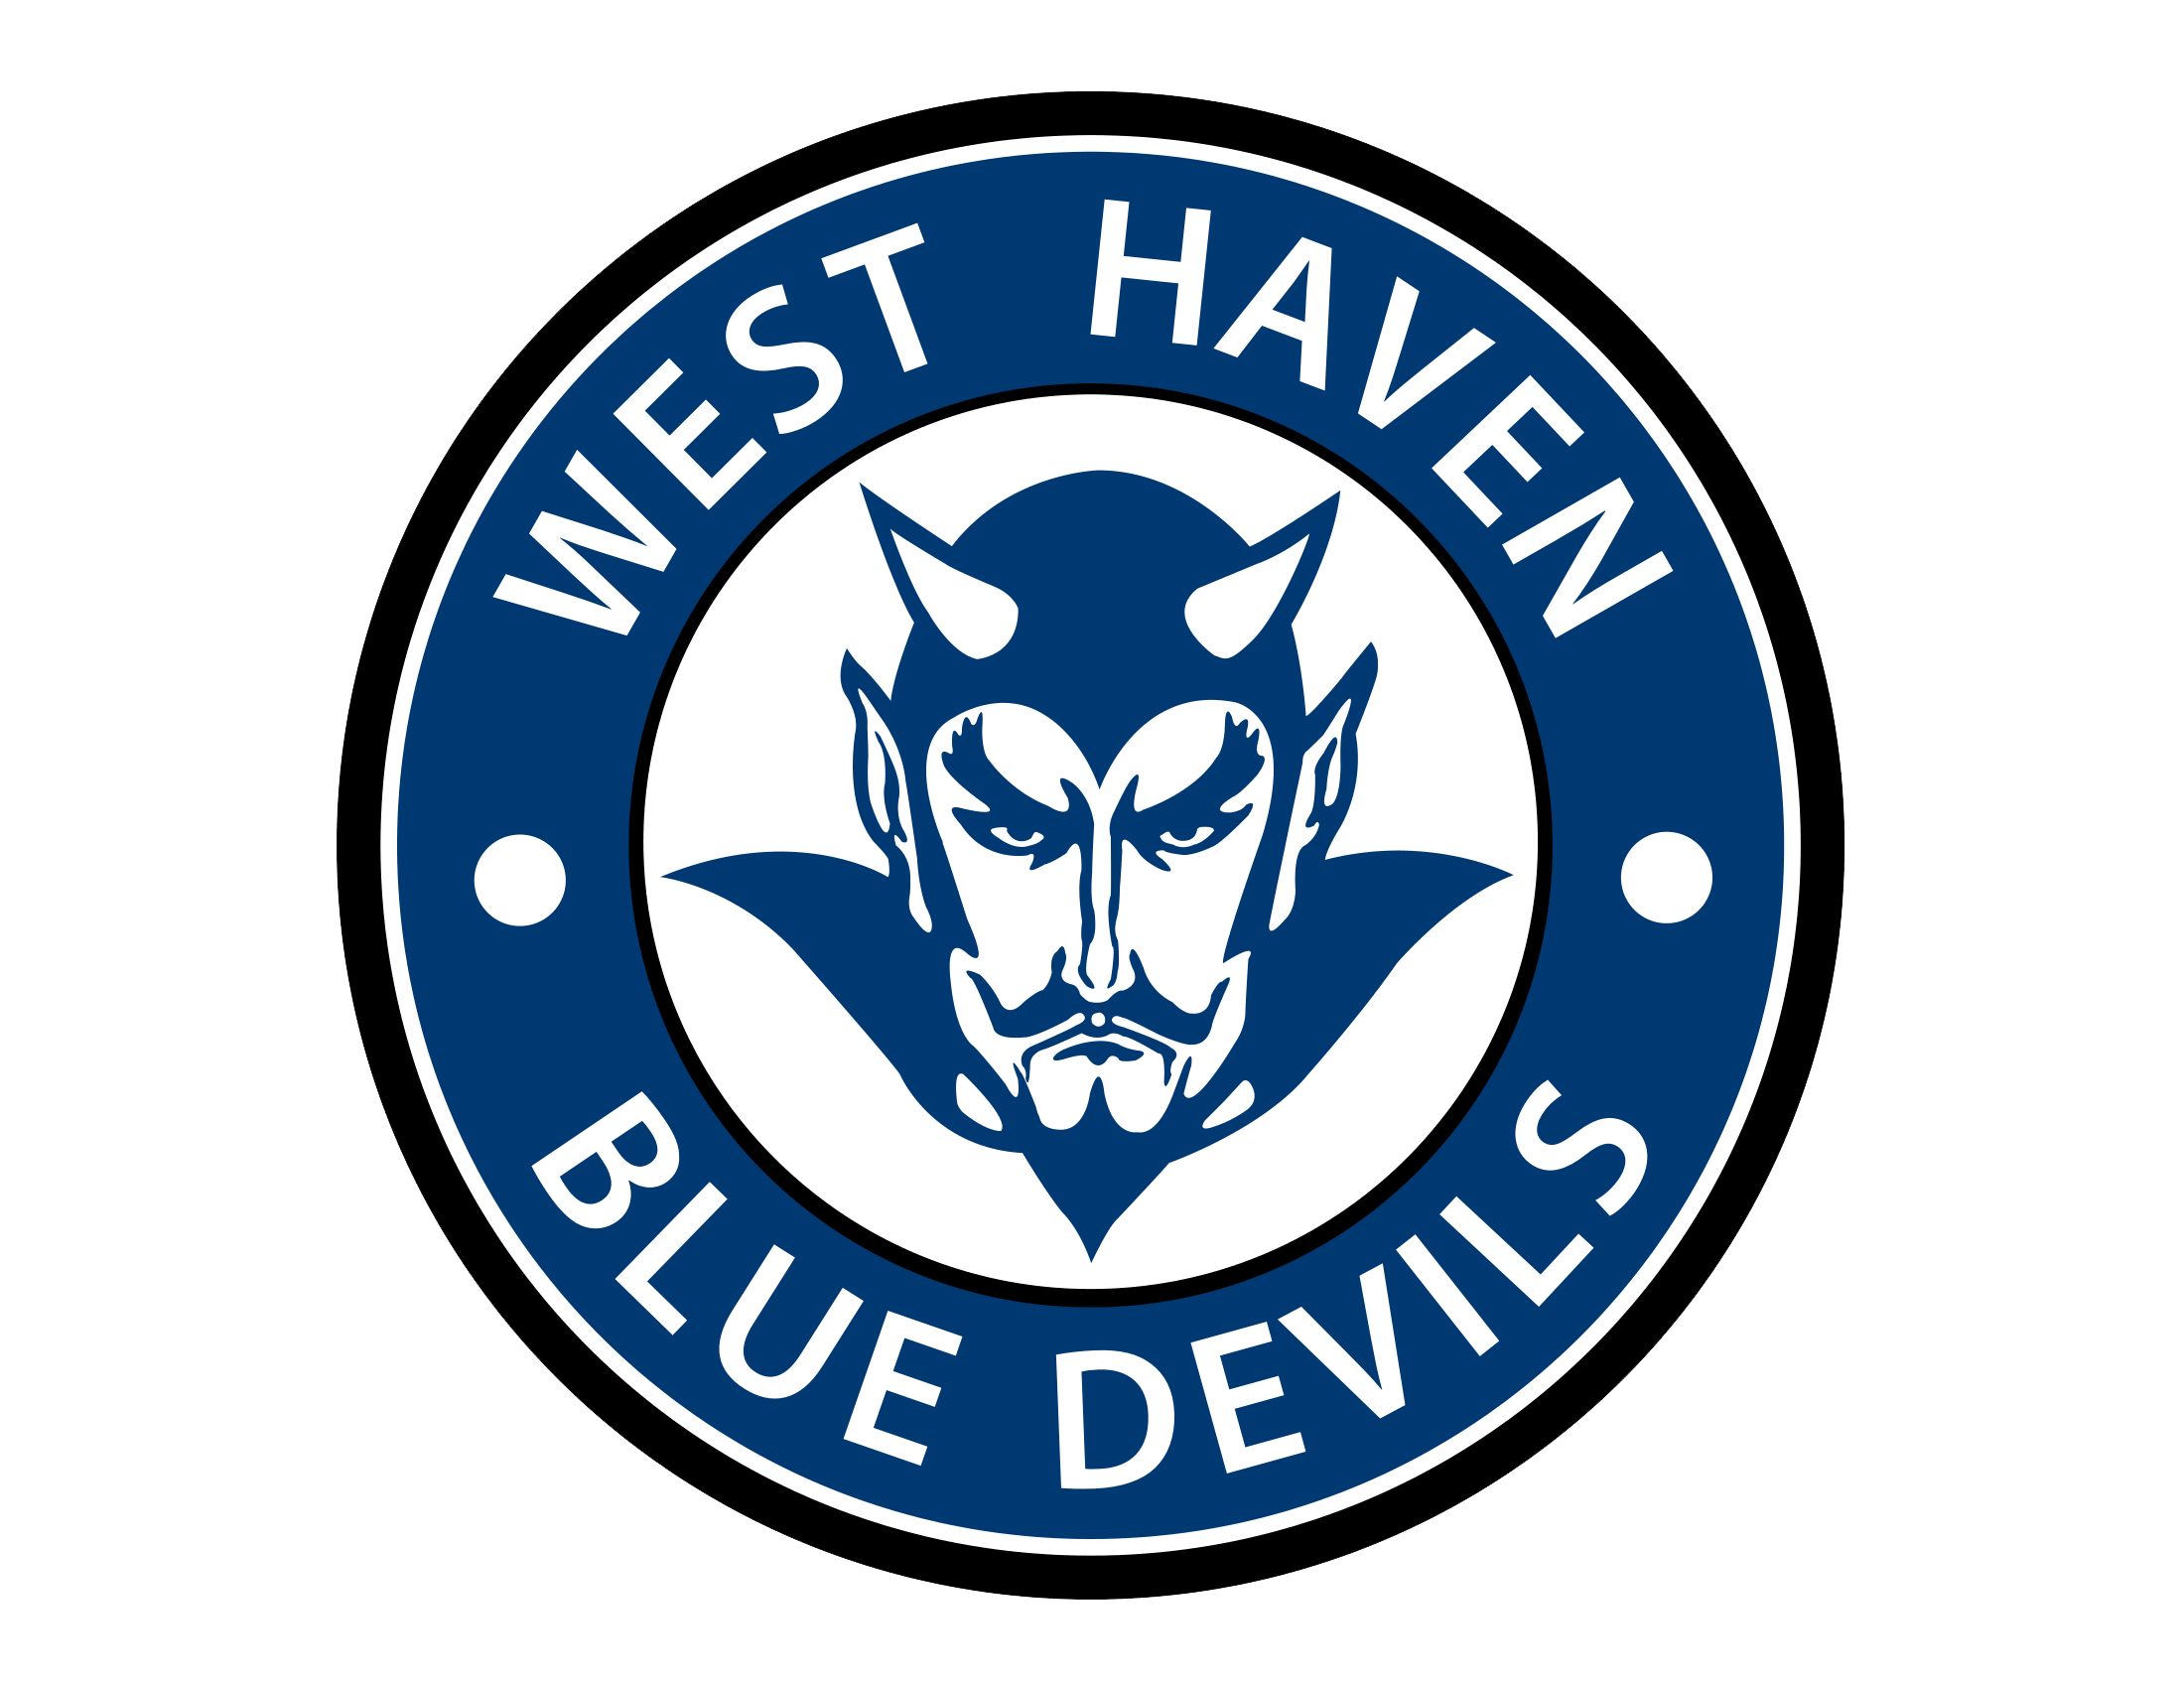 West Haven High School logo